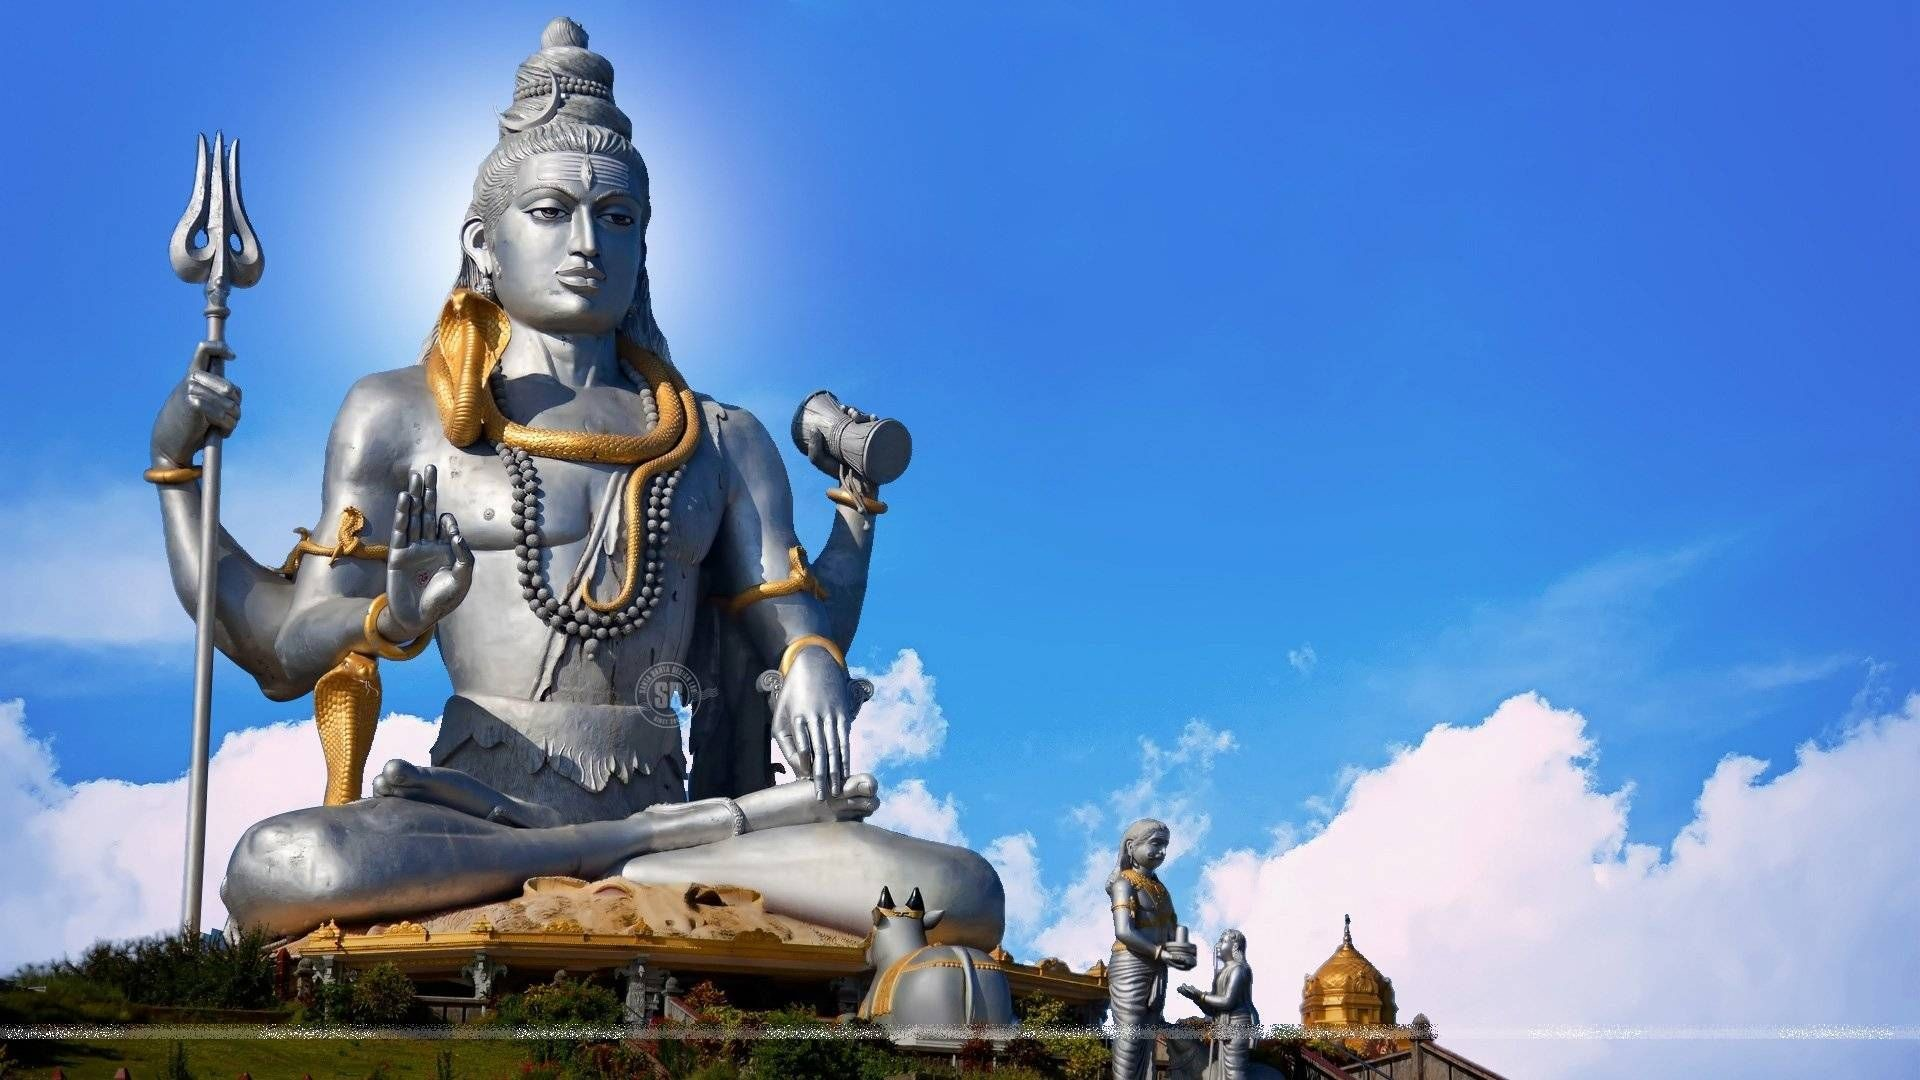 1920x1080 Lord Shiva Hd Wallpapers For Android Mobile